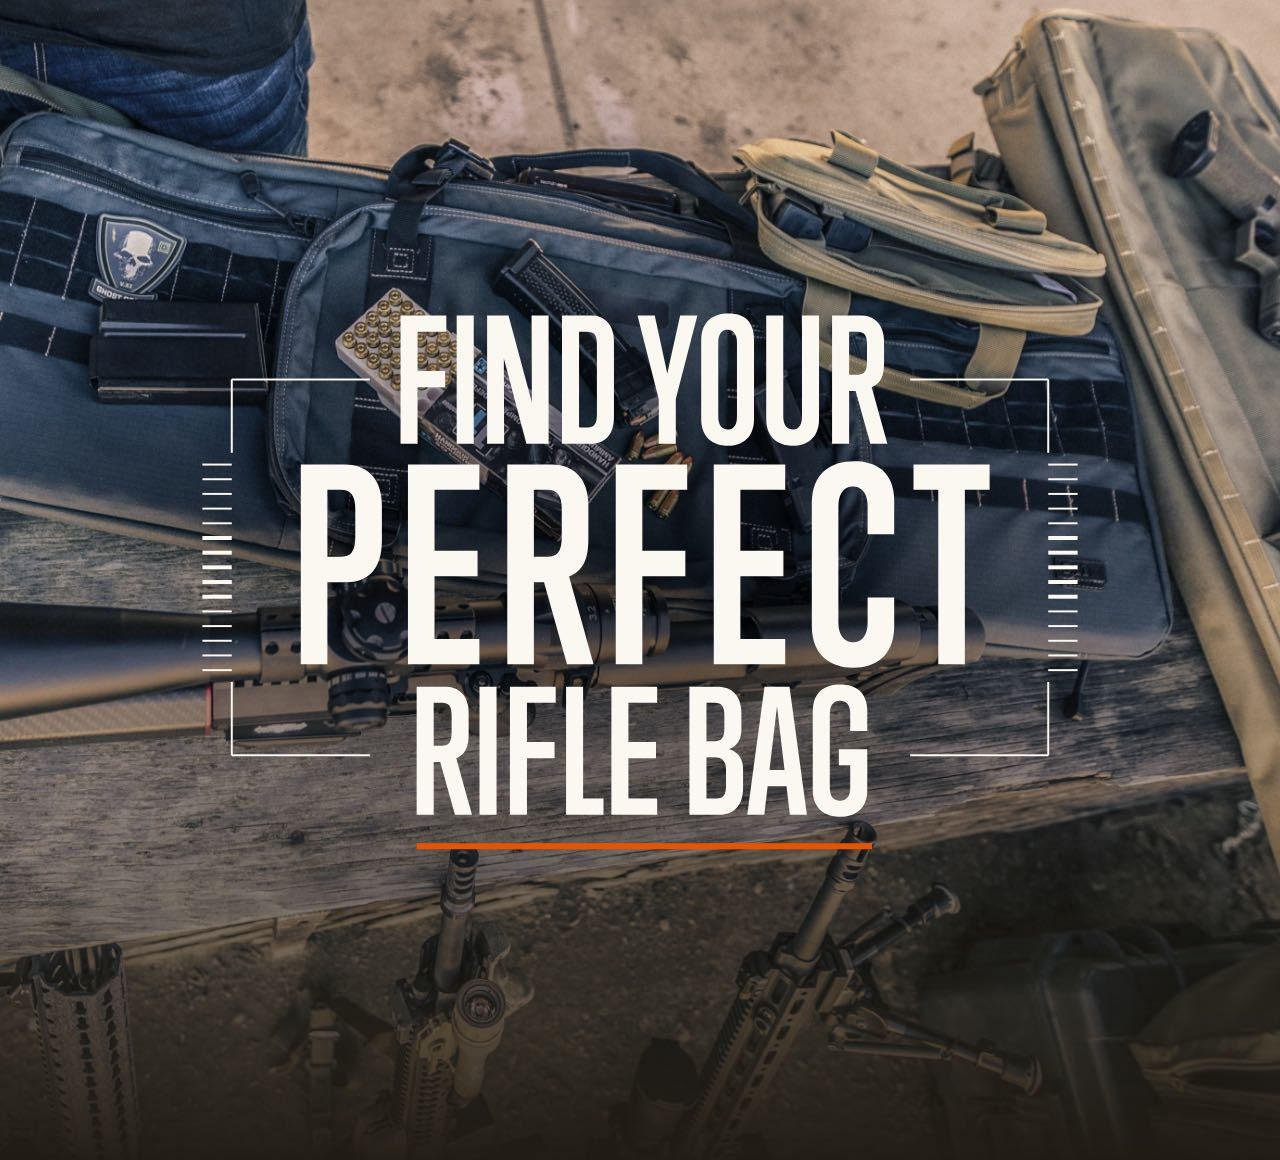 Find Your Perfect Rifle Bag